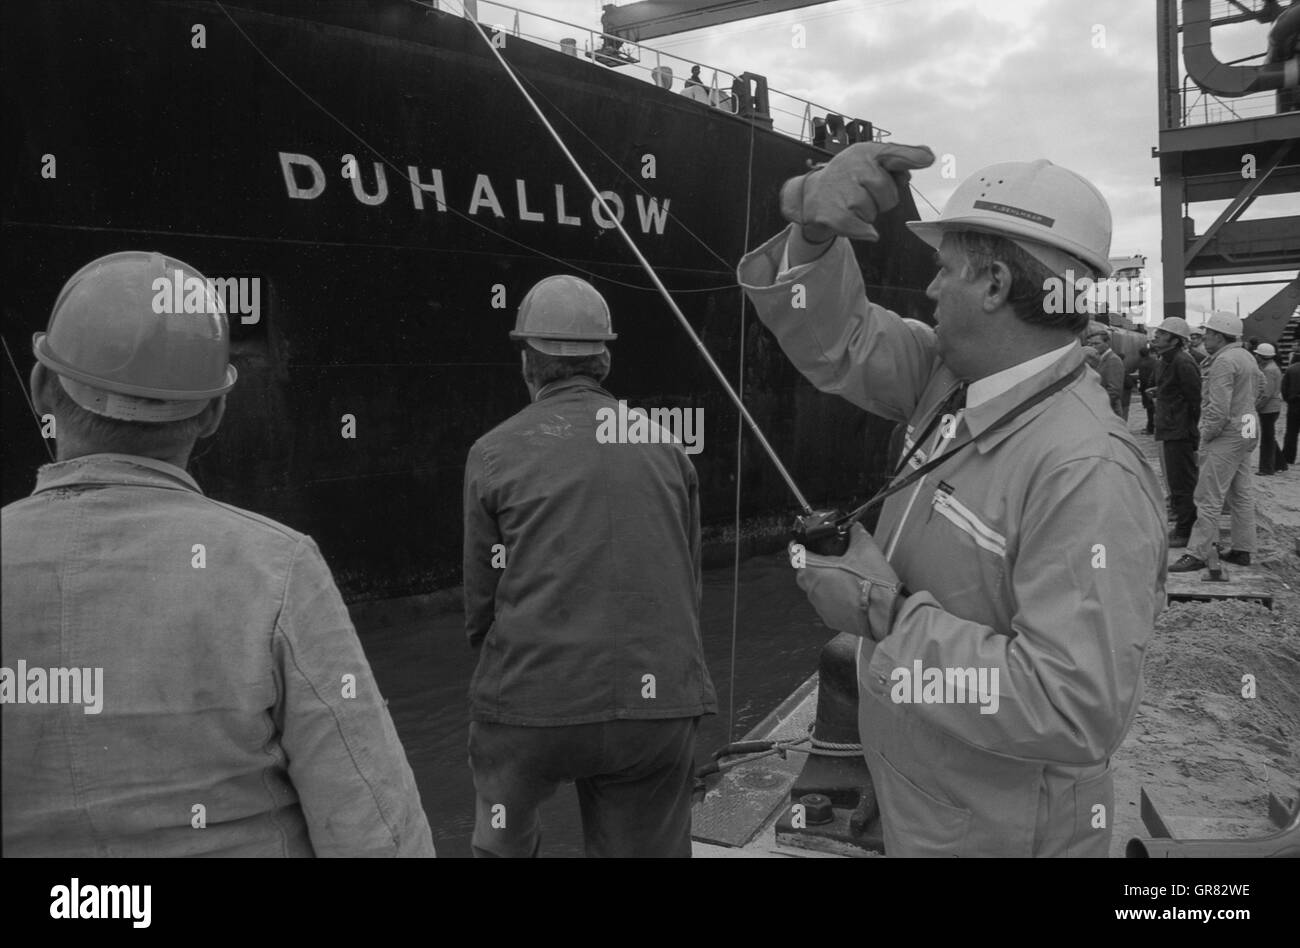 Bulk Carrier Ship Black and White Stock Photos & Images - Alamy